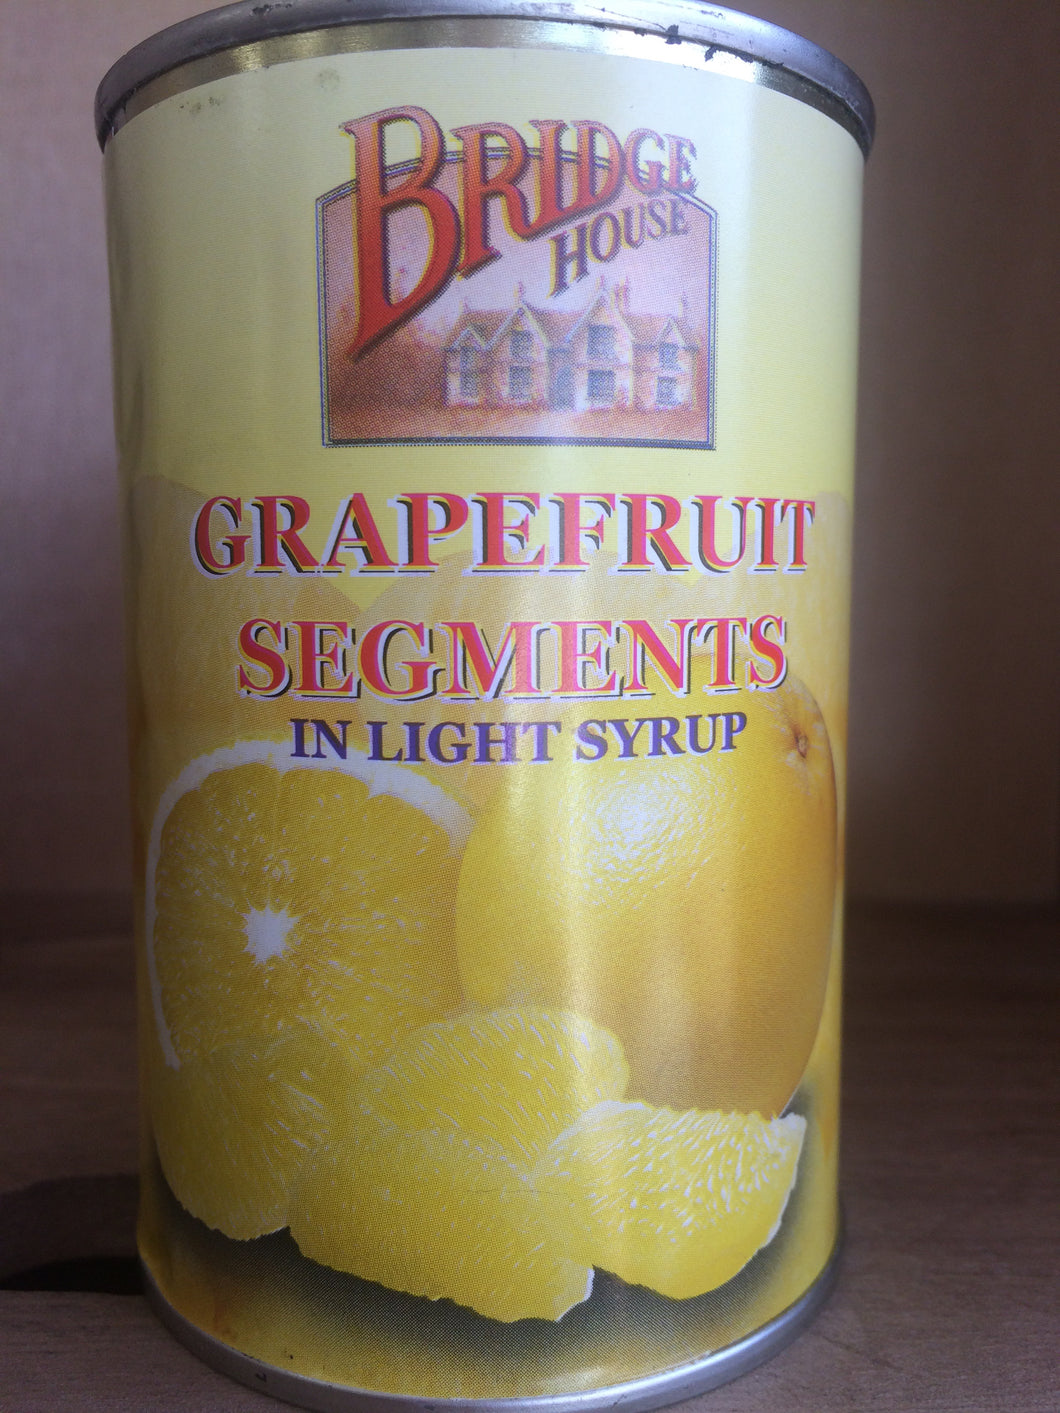 Bridge House Grapefruit Segments in Light Syrup 284g